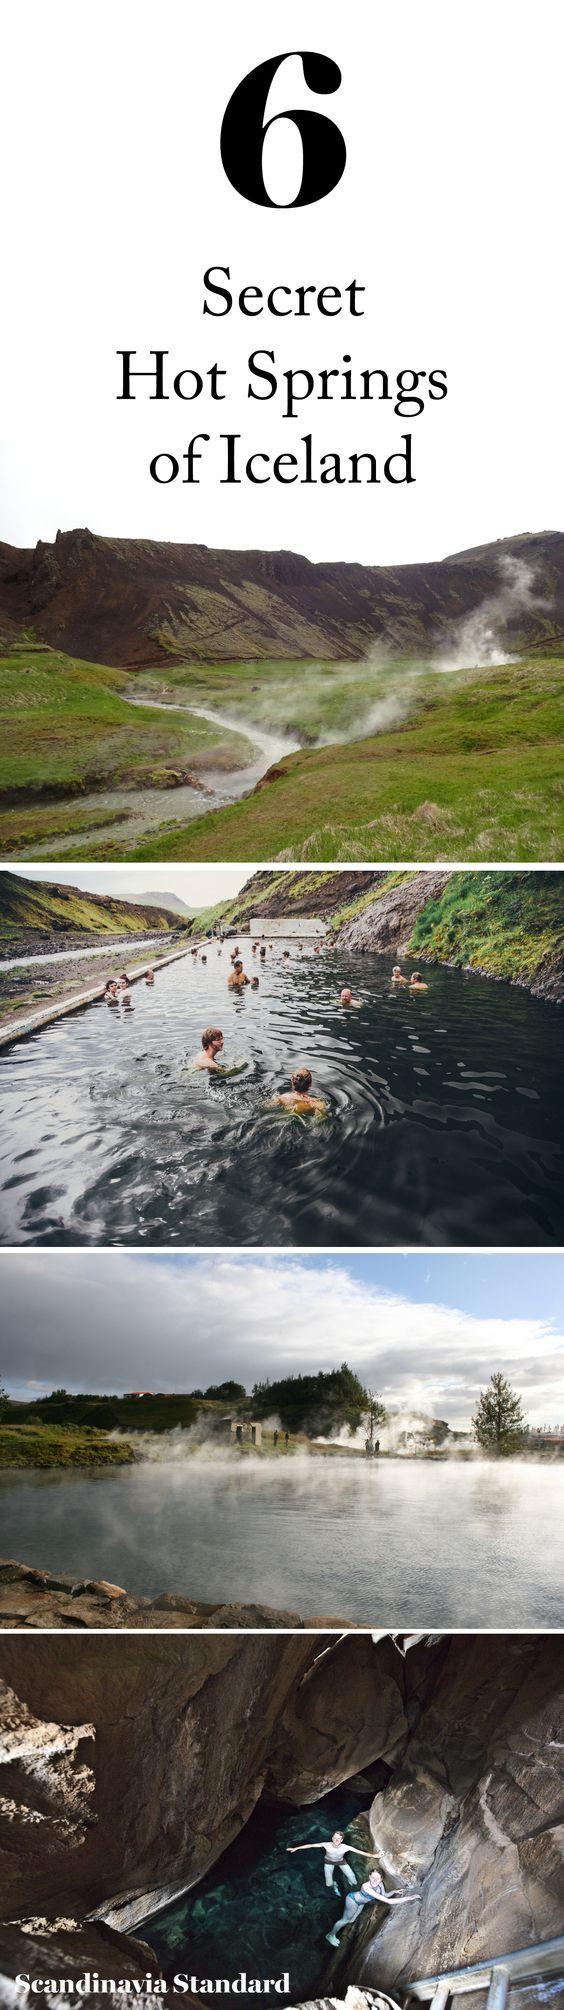 If Iceland is on your bucket list, don't miss soaking in a hot spring when you go. Six lesser-known hot springs in Iceland for you to luxuriate in on your next adventure, coordinates included!  ✈✈✈ Here is your chance to win a Free Roundtrip Ticket to anywhere in the world **GIVEAWAY** ✈✈✈ https://thedecisionmoment.com/free-roundtrip-tickets-giveaway/